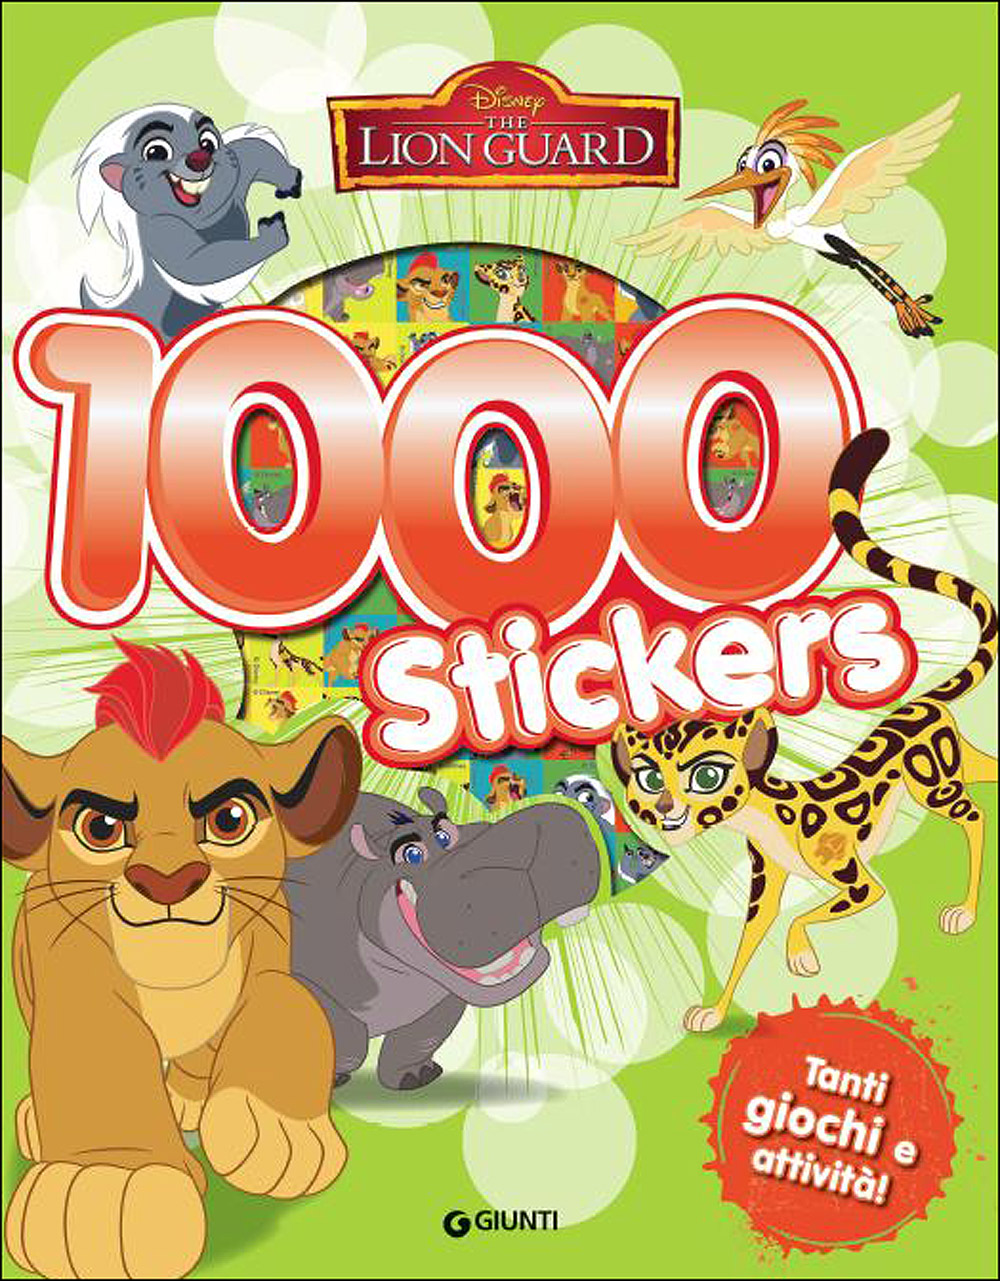 500/1000 Stickers - The Lion Guard. 1000 Stickers